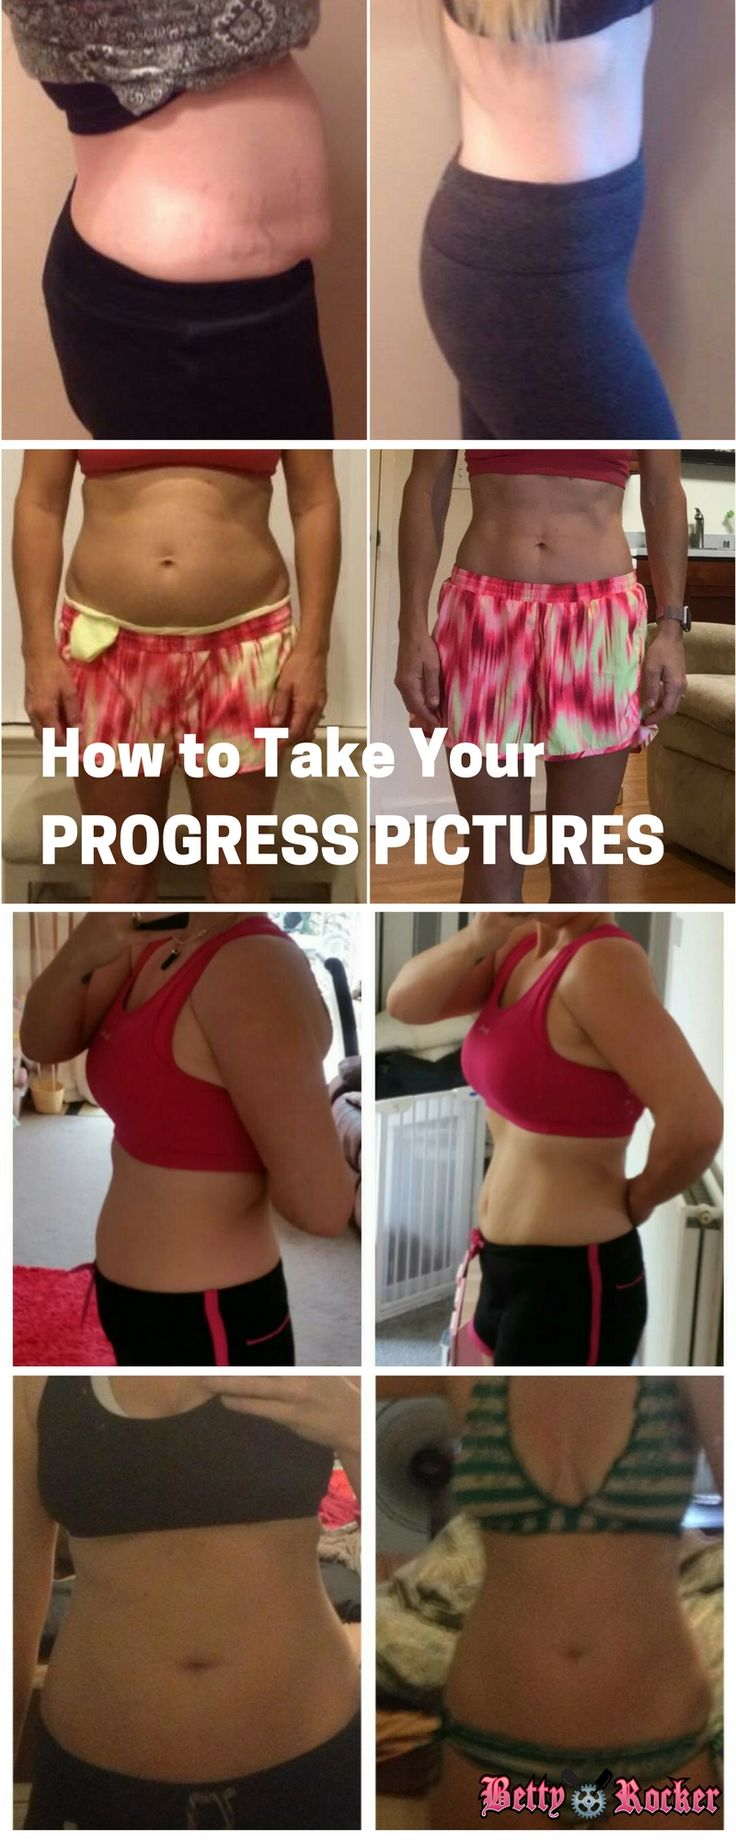 Here's a great reference for how to take your progress pictures.